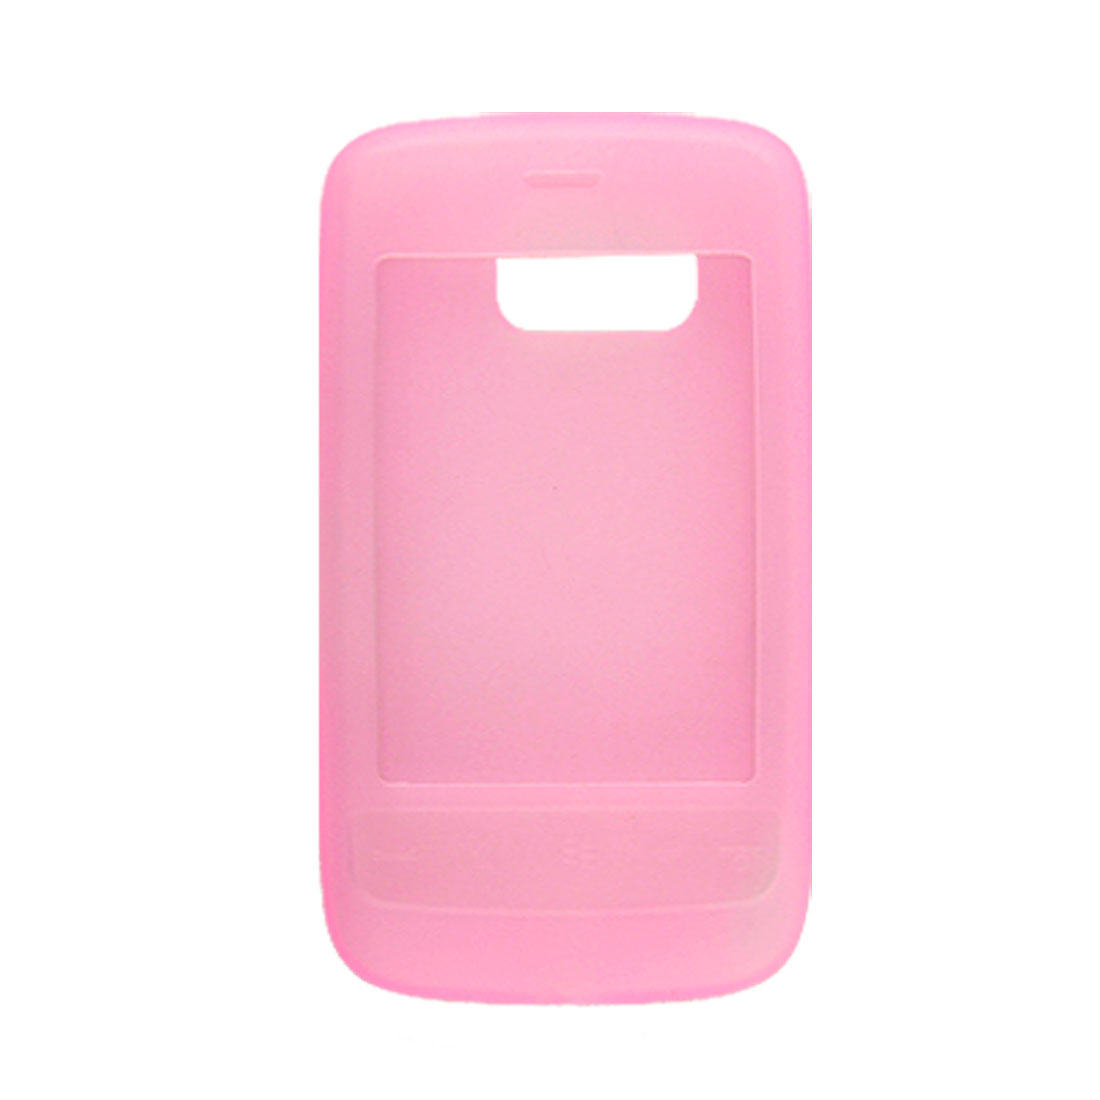 Pink Case Silicone Skin Cover for HTC Touch 2/T3333